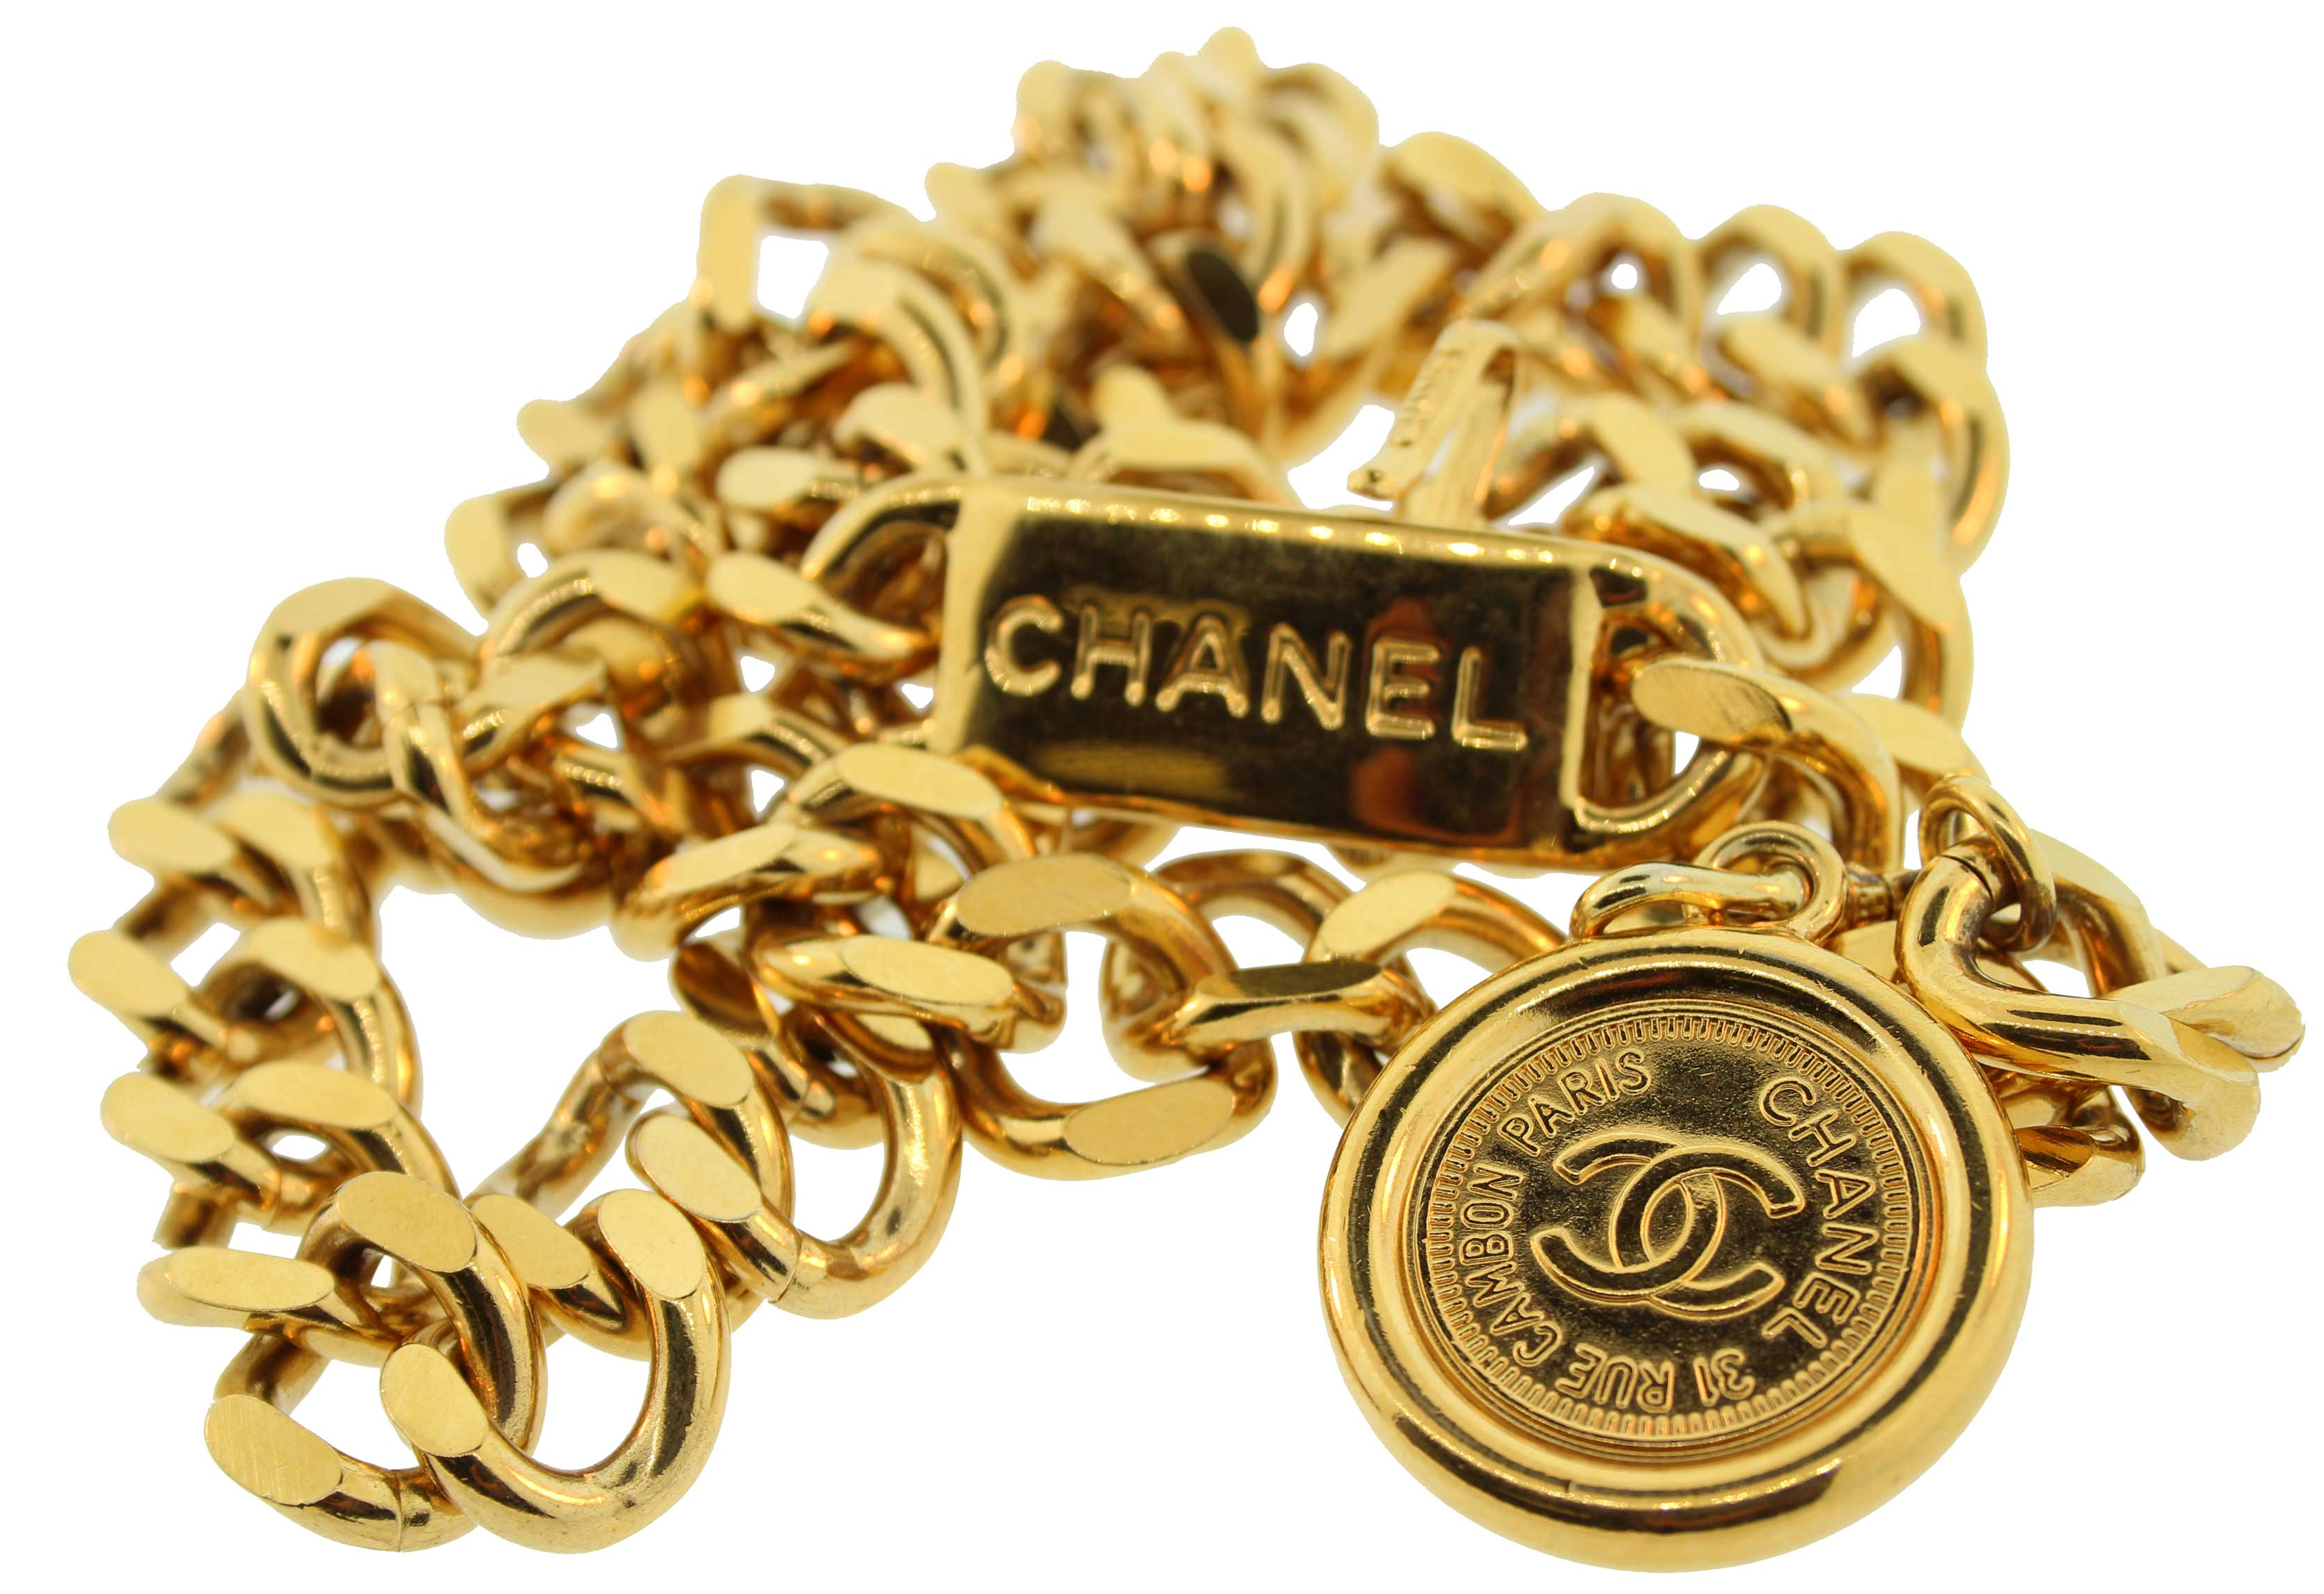 multi chanel rstkd chains vintage products chain pendent